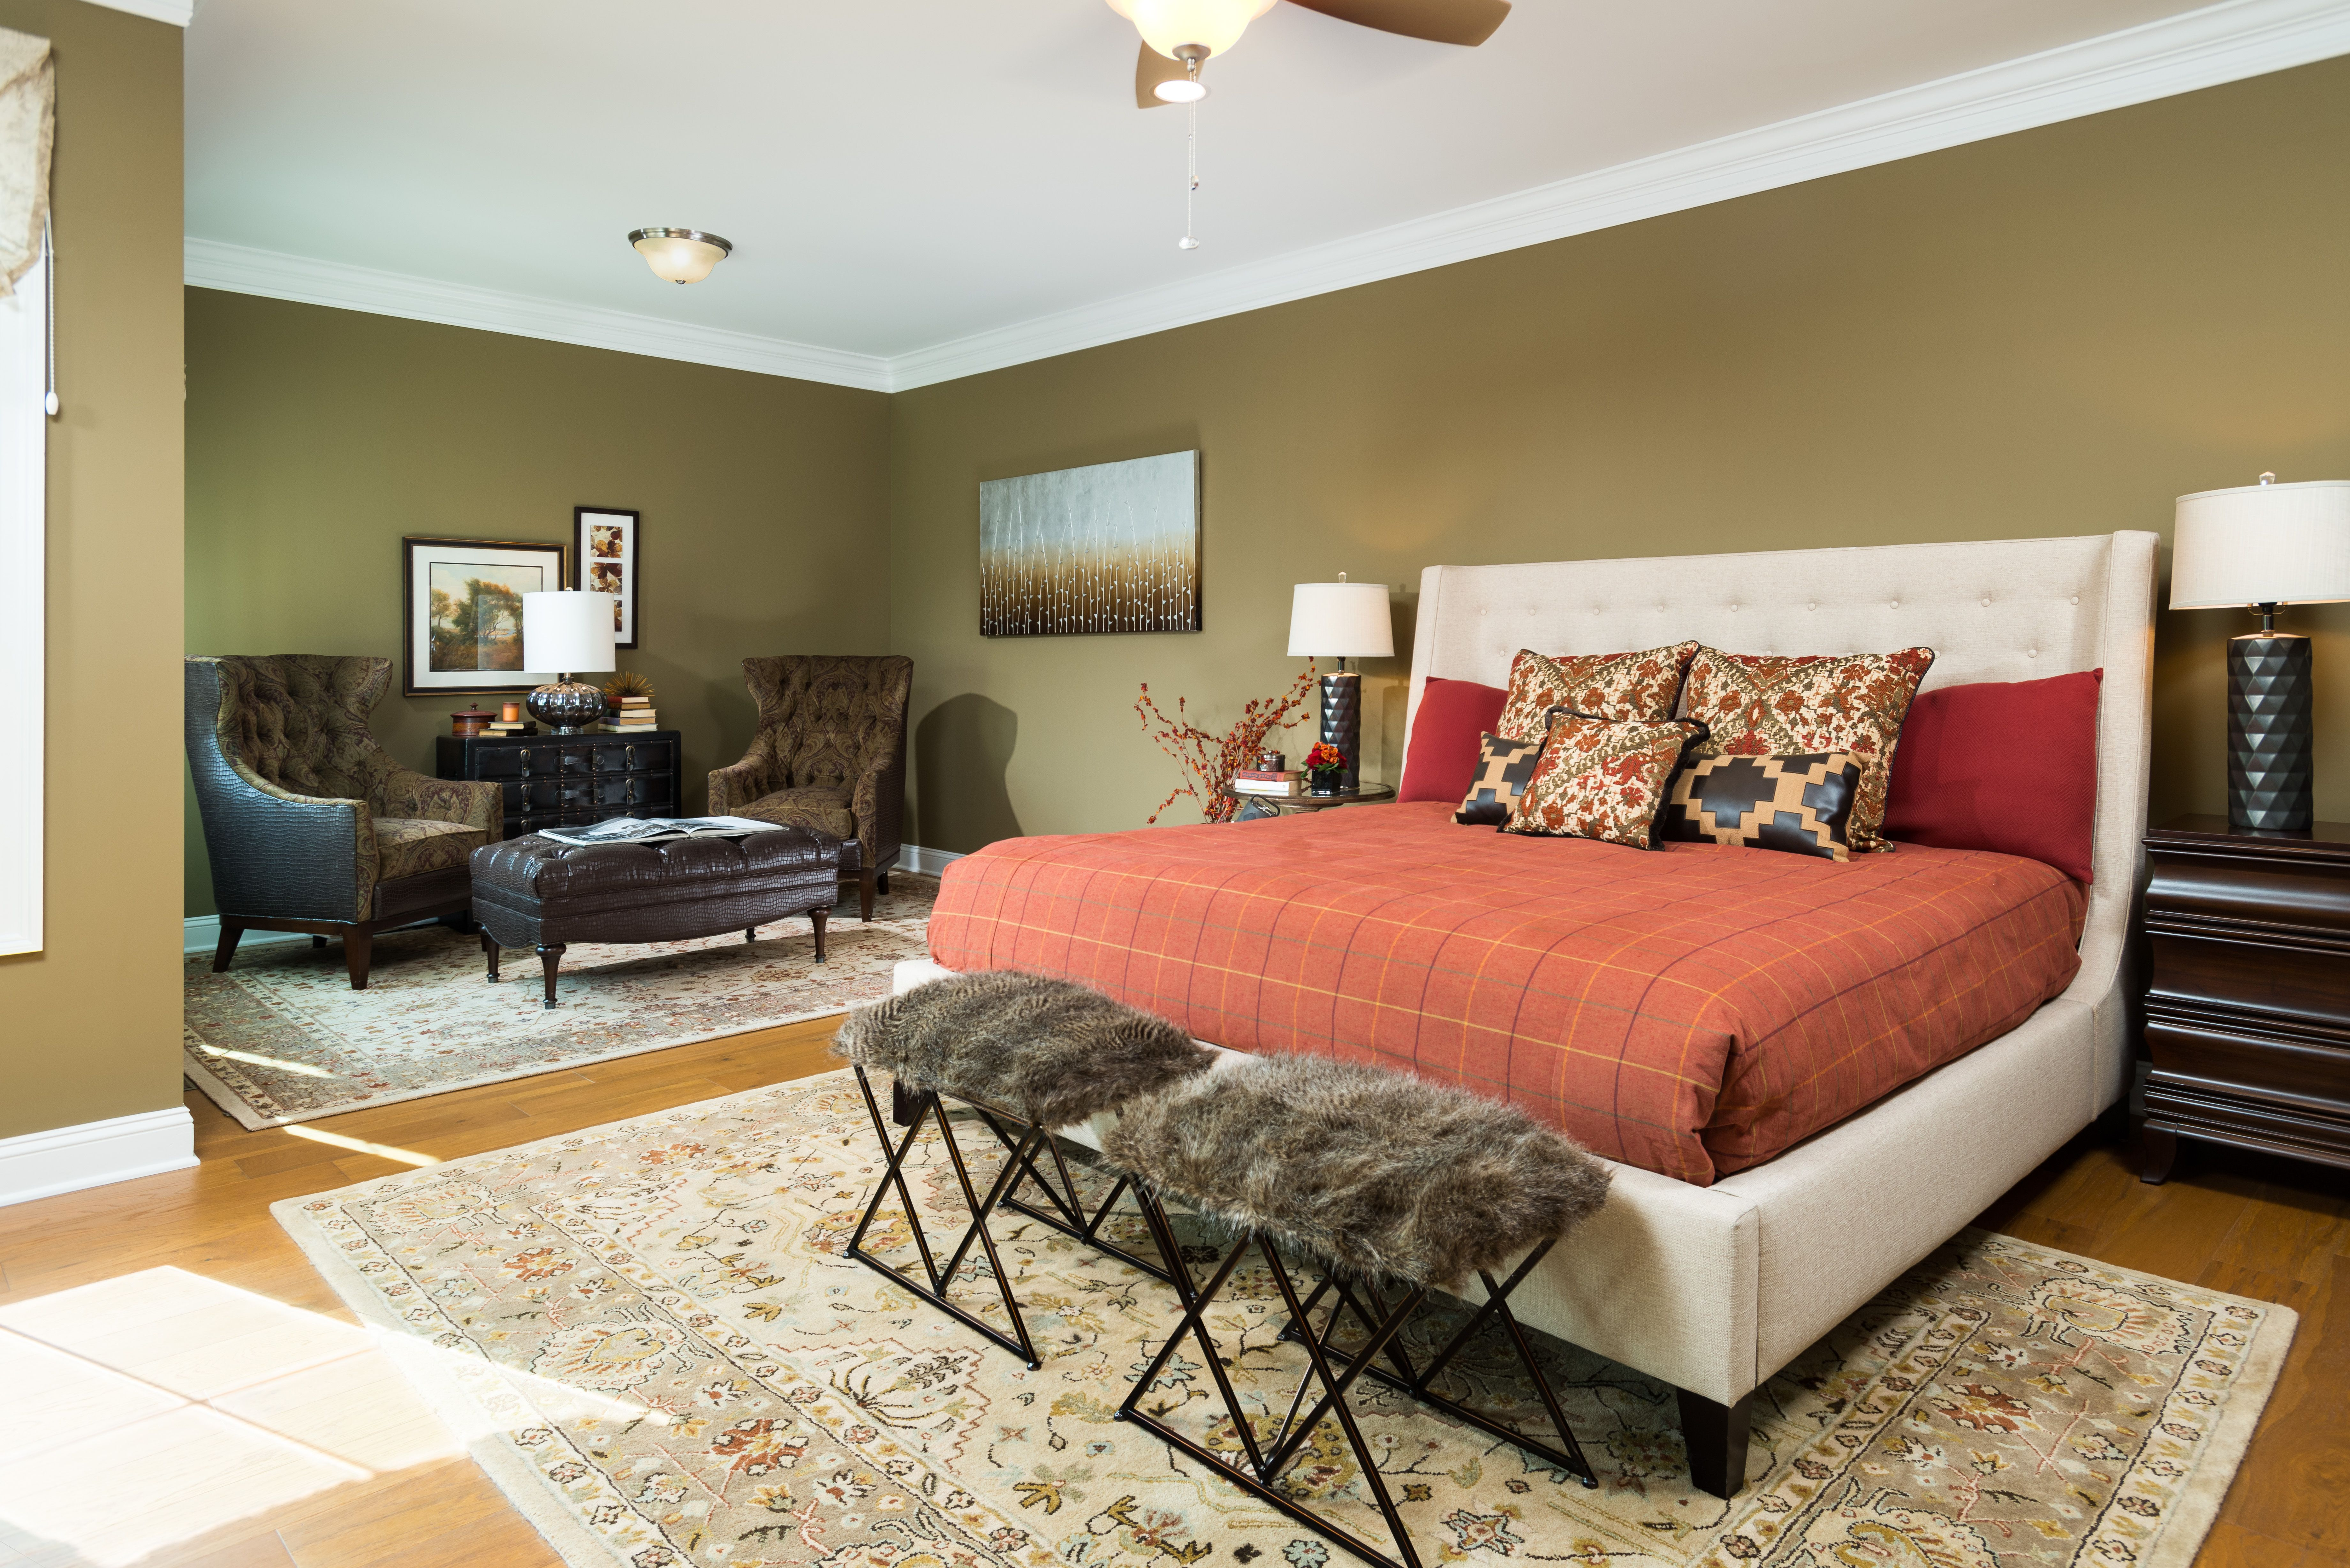 Bedroom featured in the City Square End Unit By Belmonte Builders in Albany-Saratoga, NY